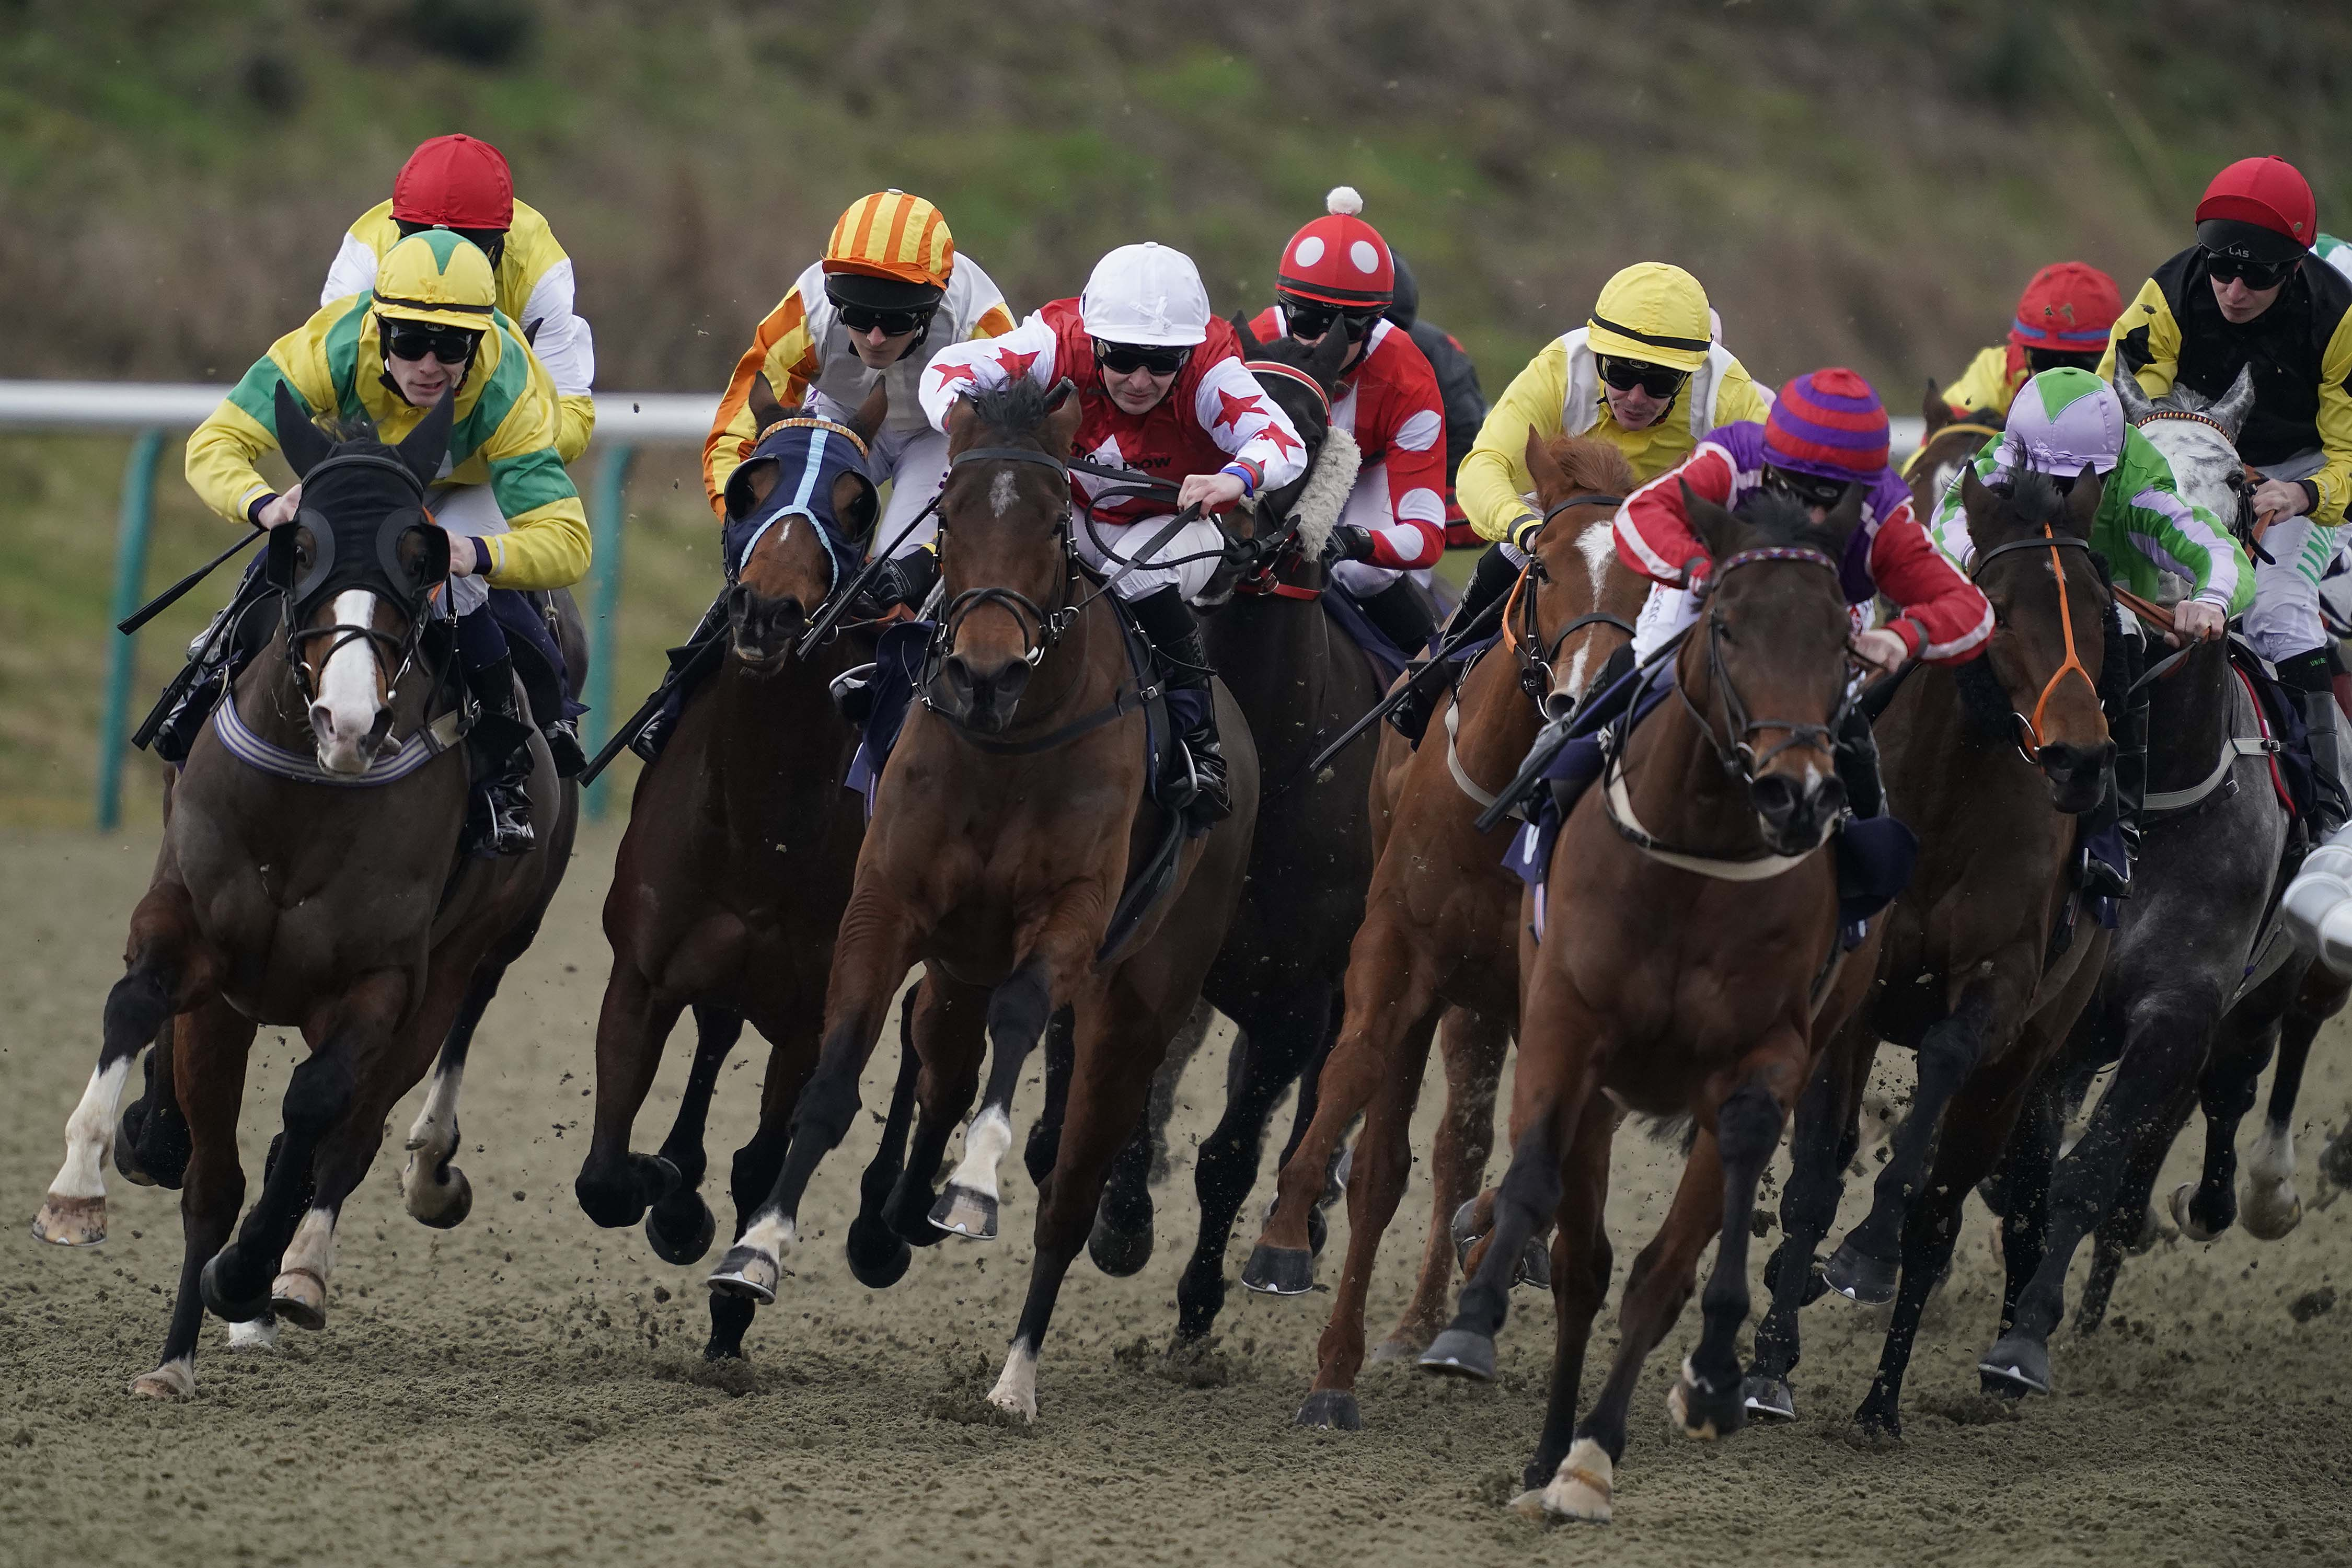 A horse race in England.